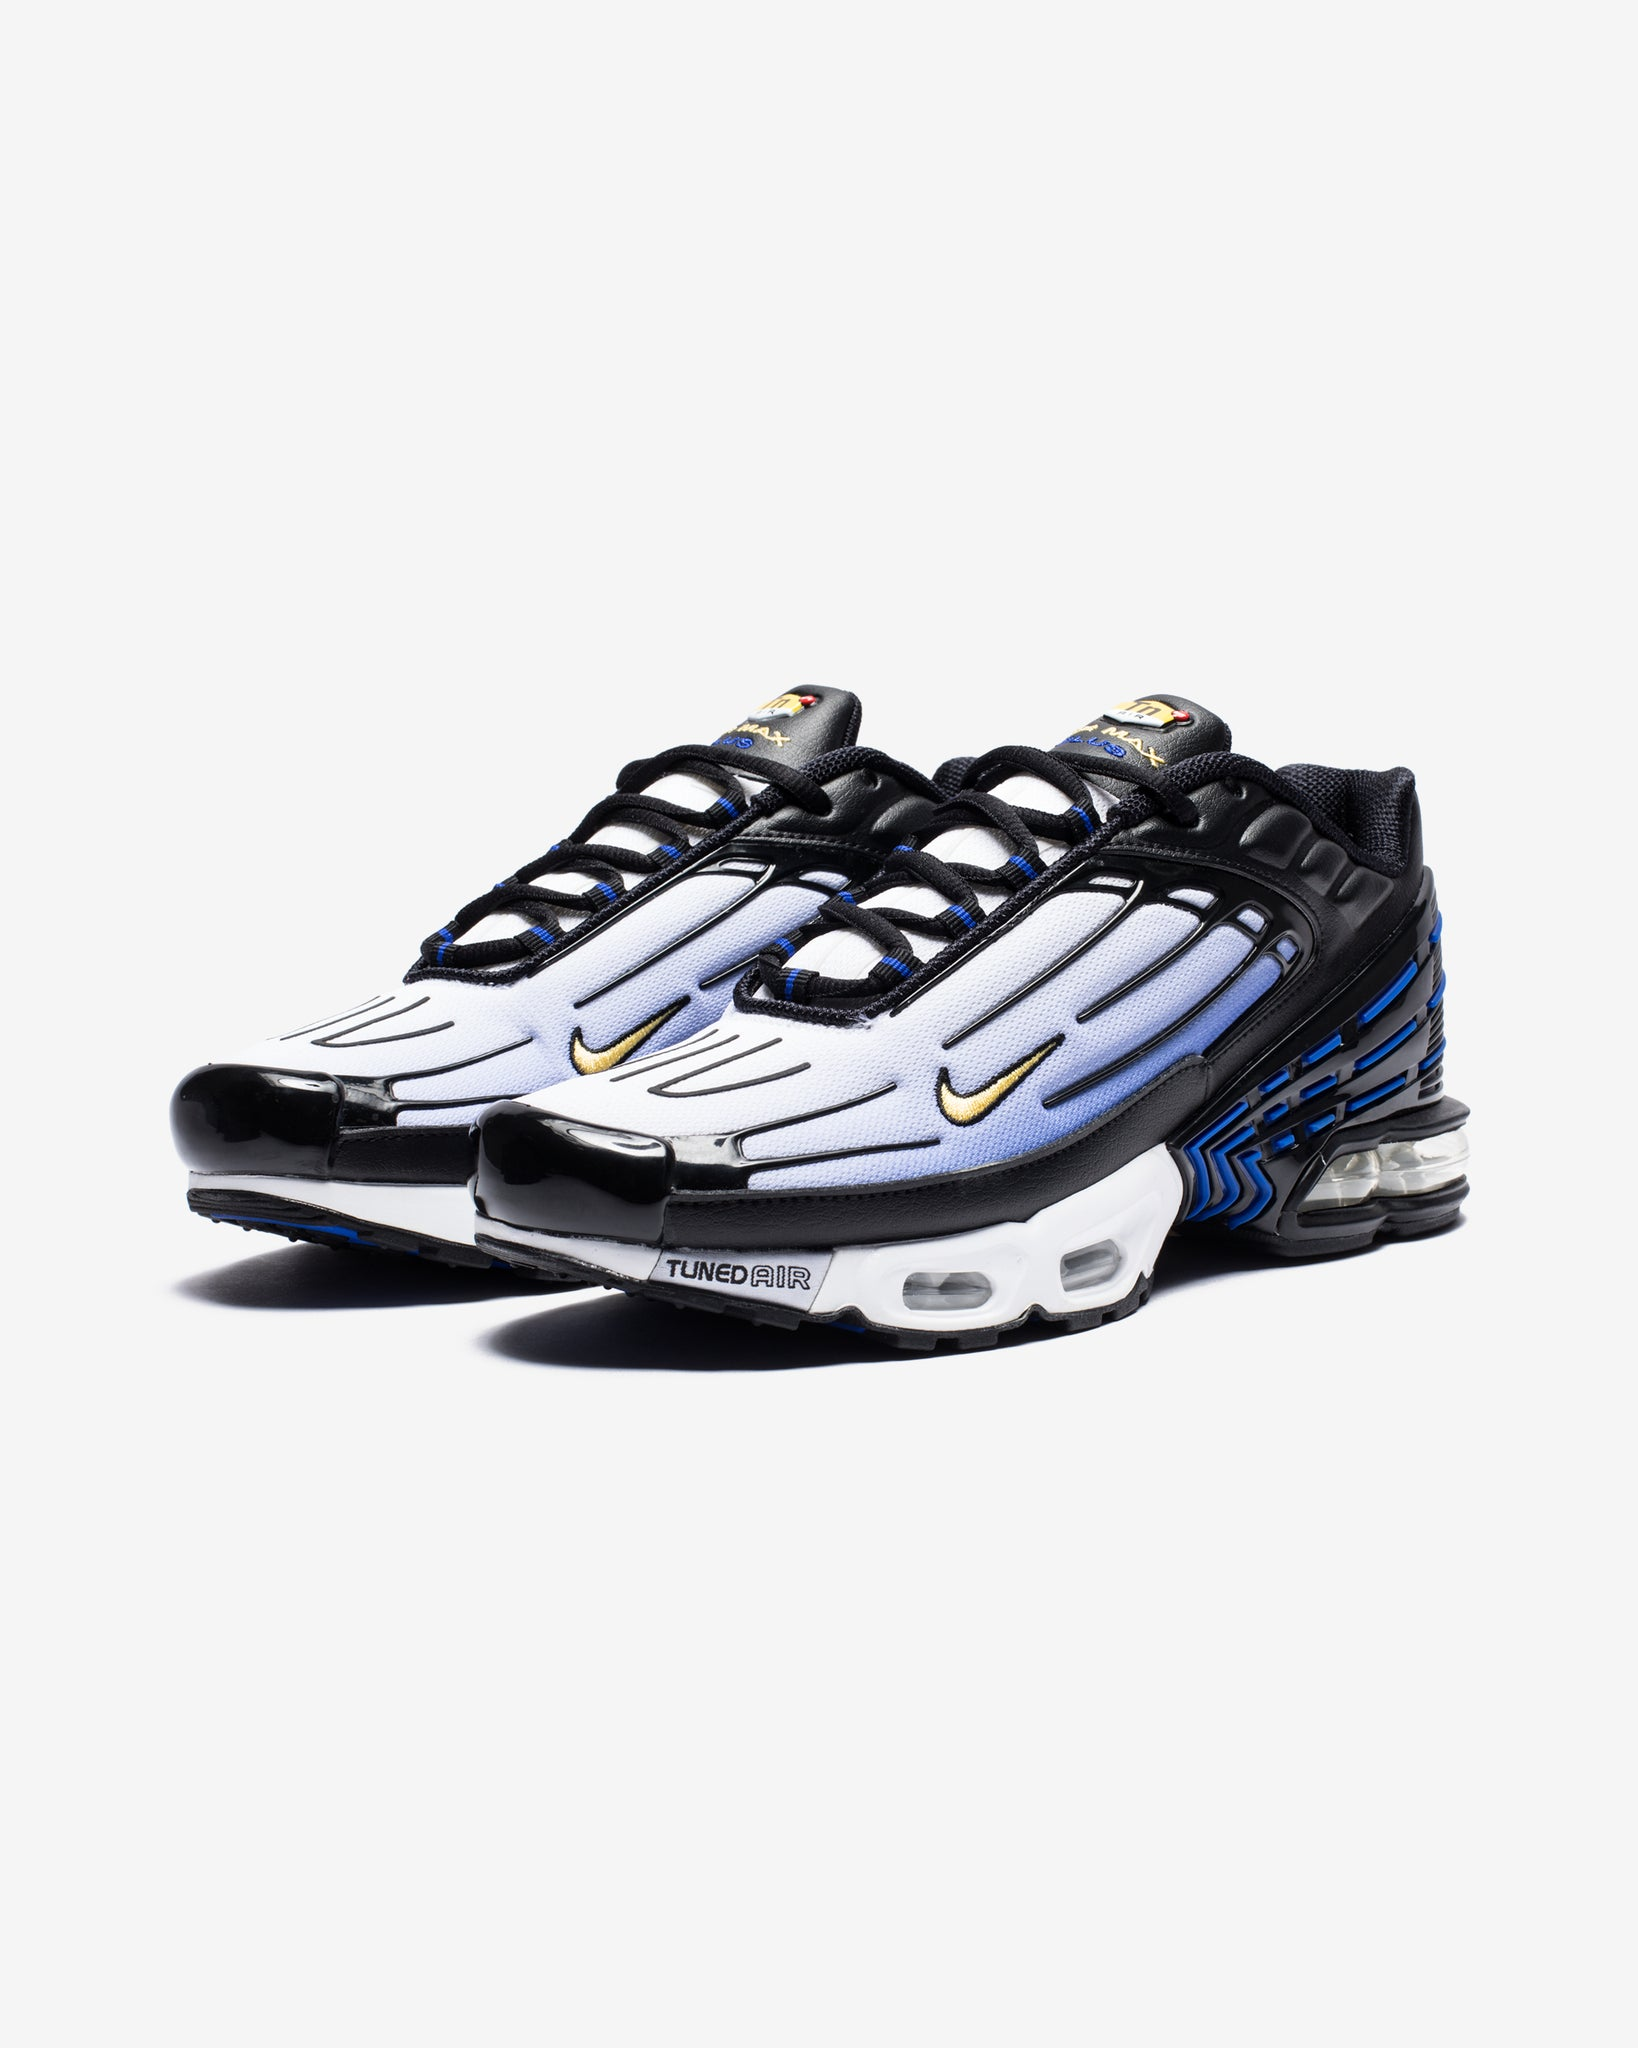 AIR MAX PLUS III - BLACK/CHAMOIS/HYPERBLUE/WHITE